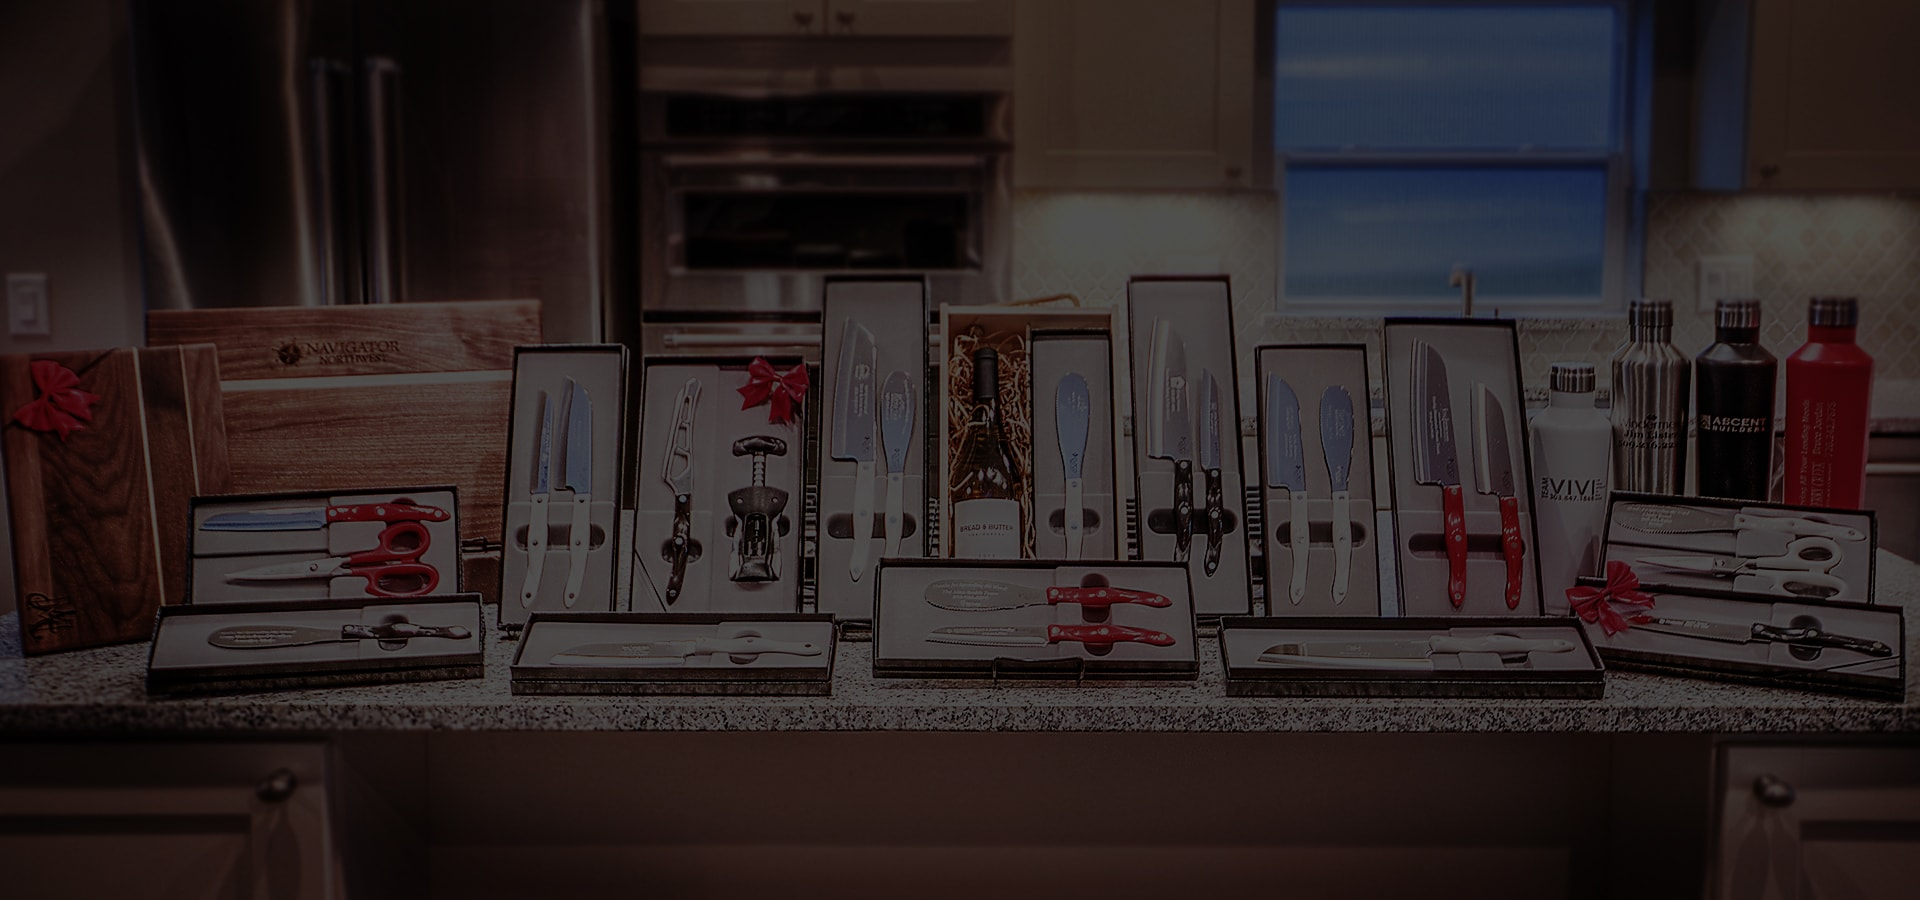 Lineup of top closing gifts in a custom kitchen.